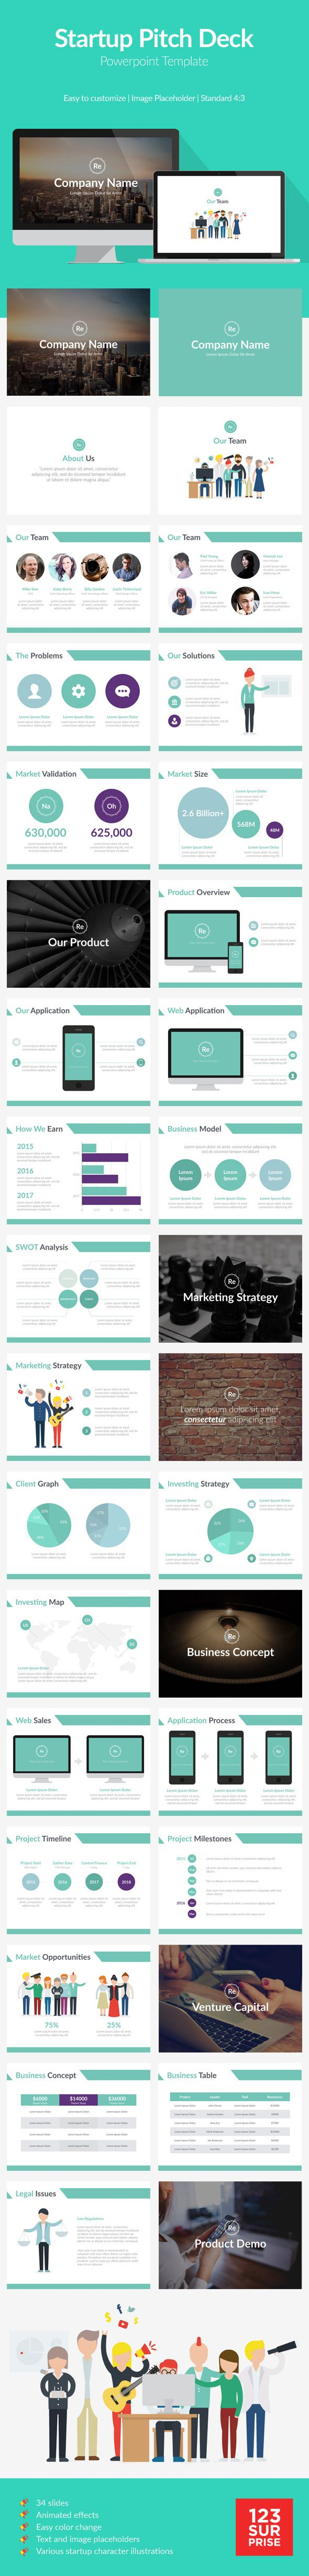 Startup pitch deck template design slides buy now http startup pitch deck template design slides buy now httpgraphicriveritemstartup pitch deck template12882233refksioks flashek Image collections